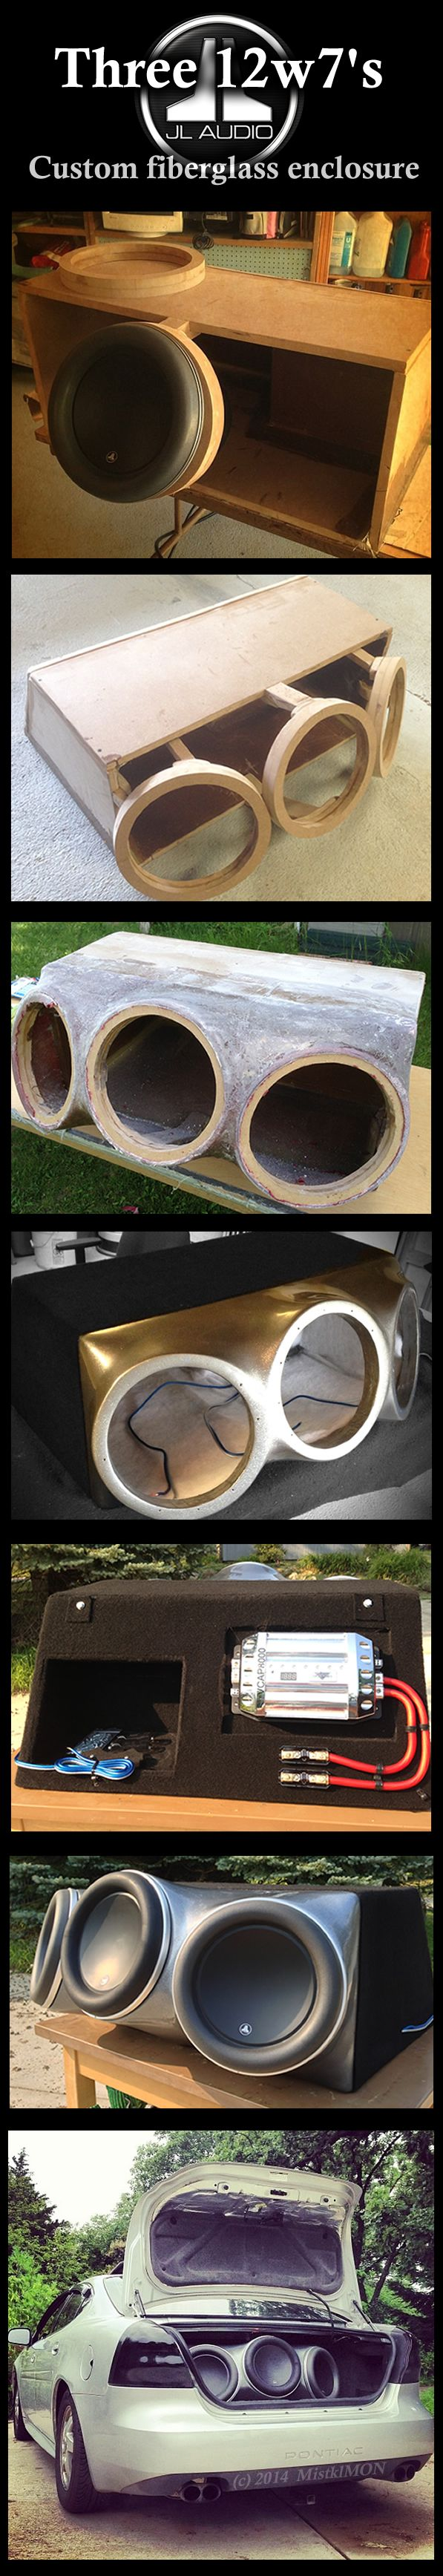 Custom fiberglass enclosure for three JL Audio 12w7s